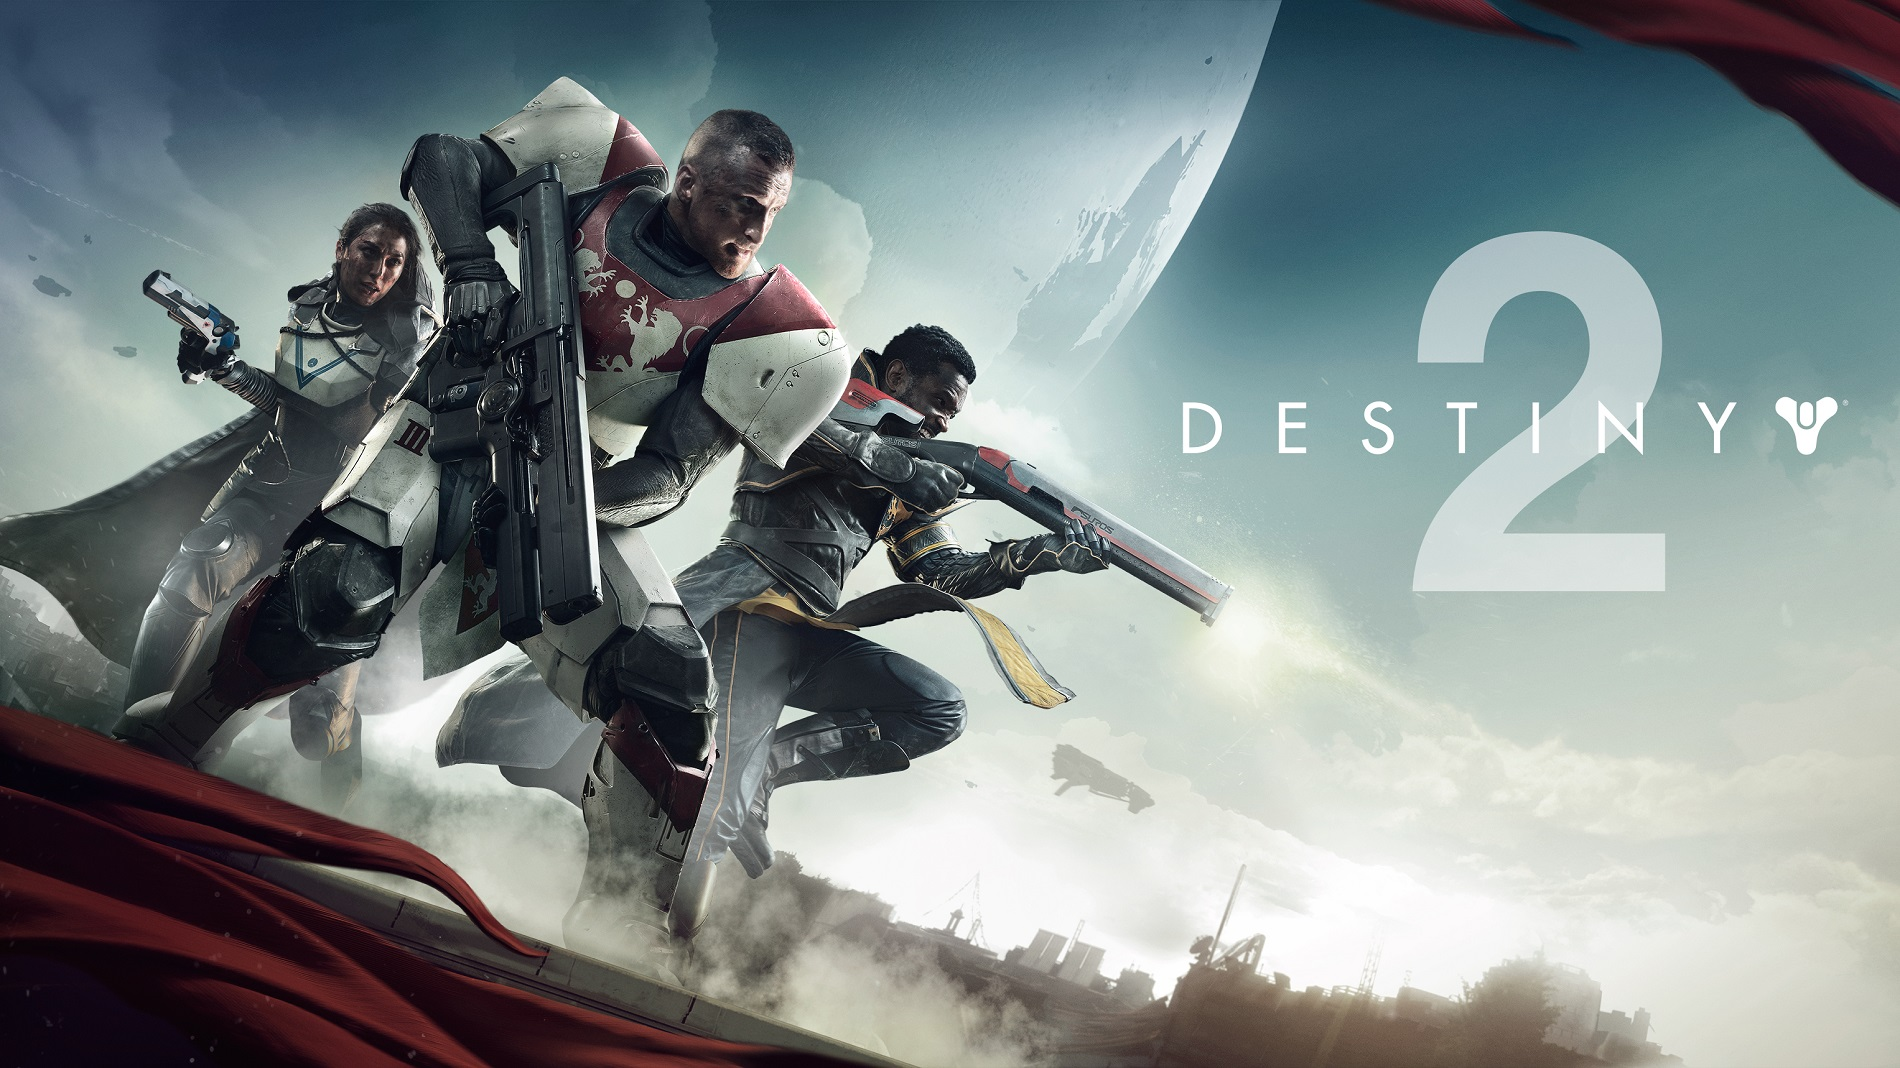 Destiny 2 Asia Nvidia voucher Battle.net key